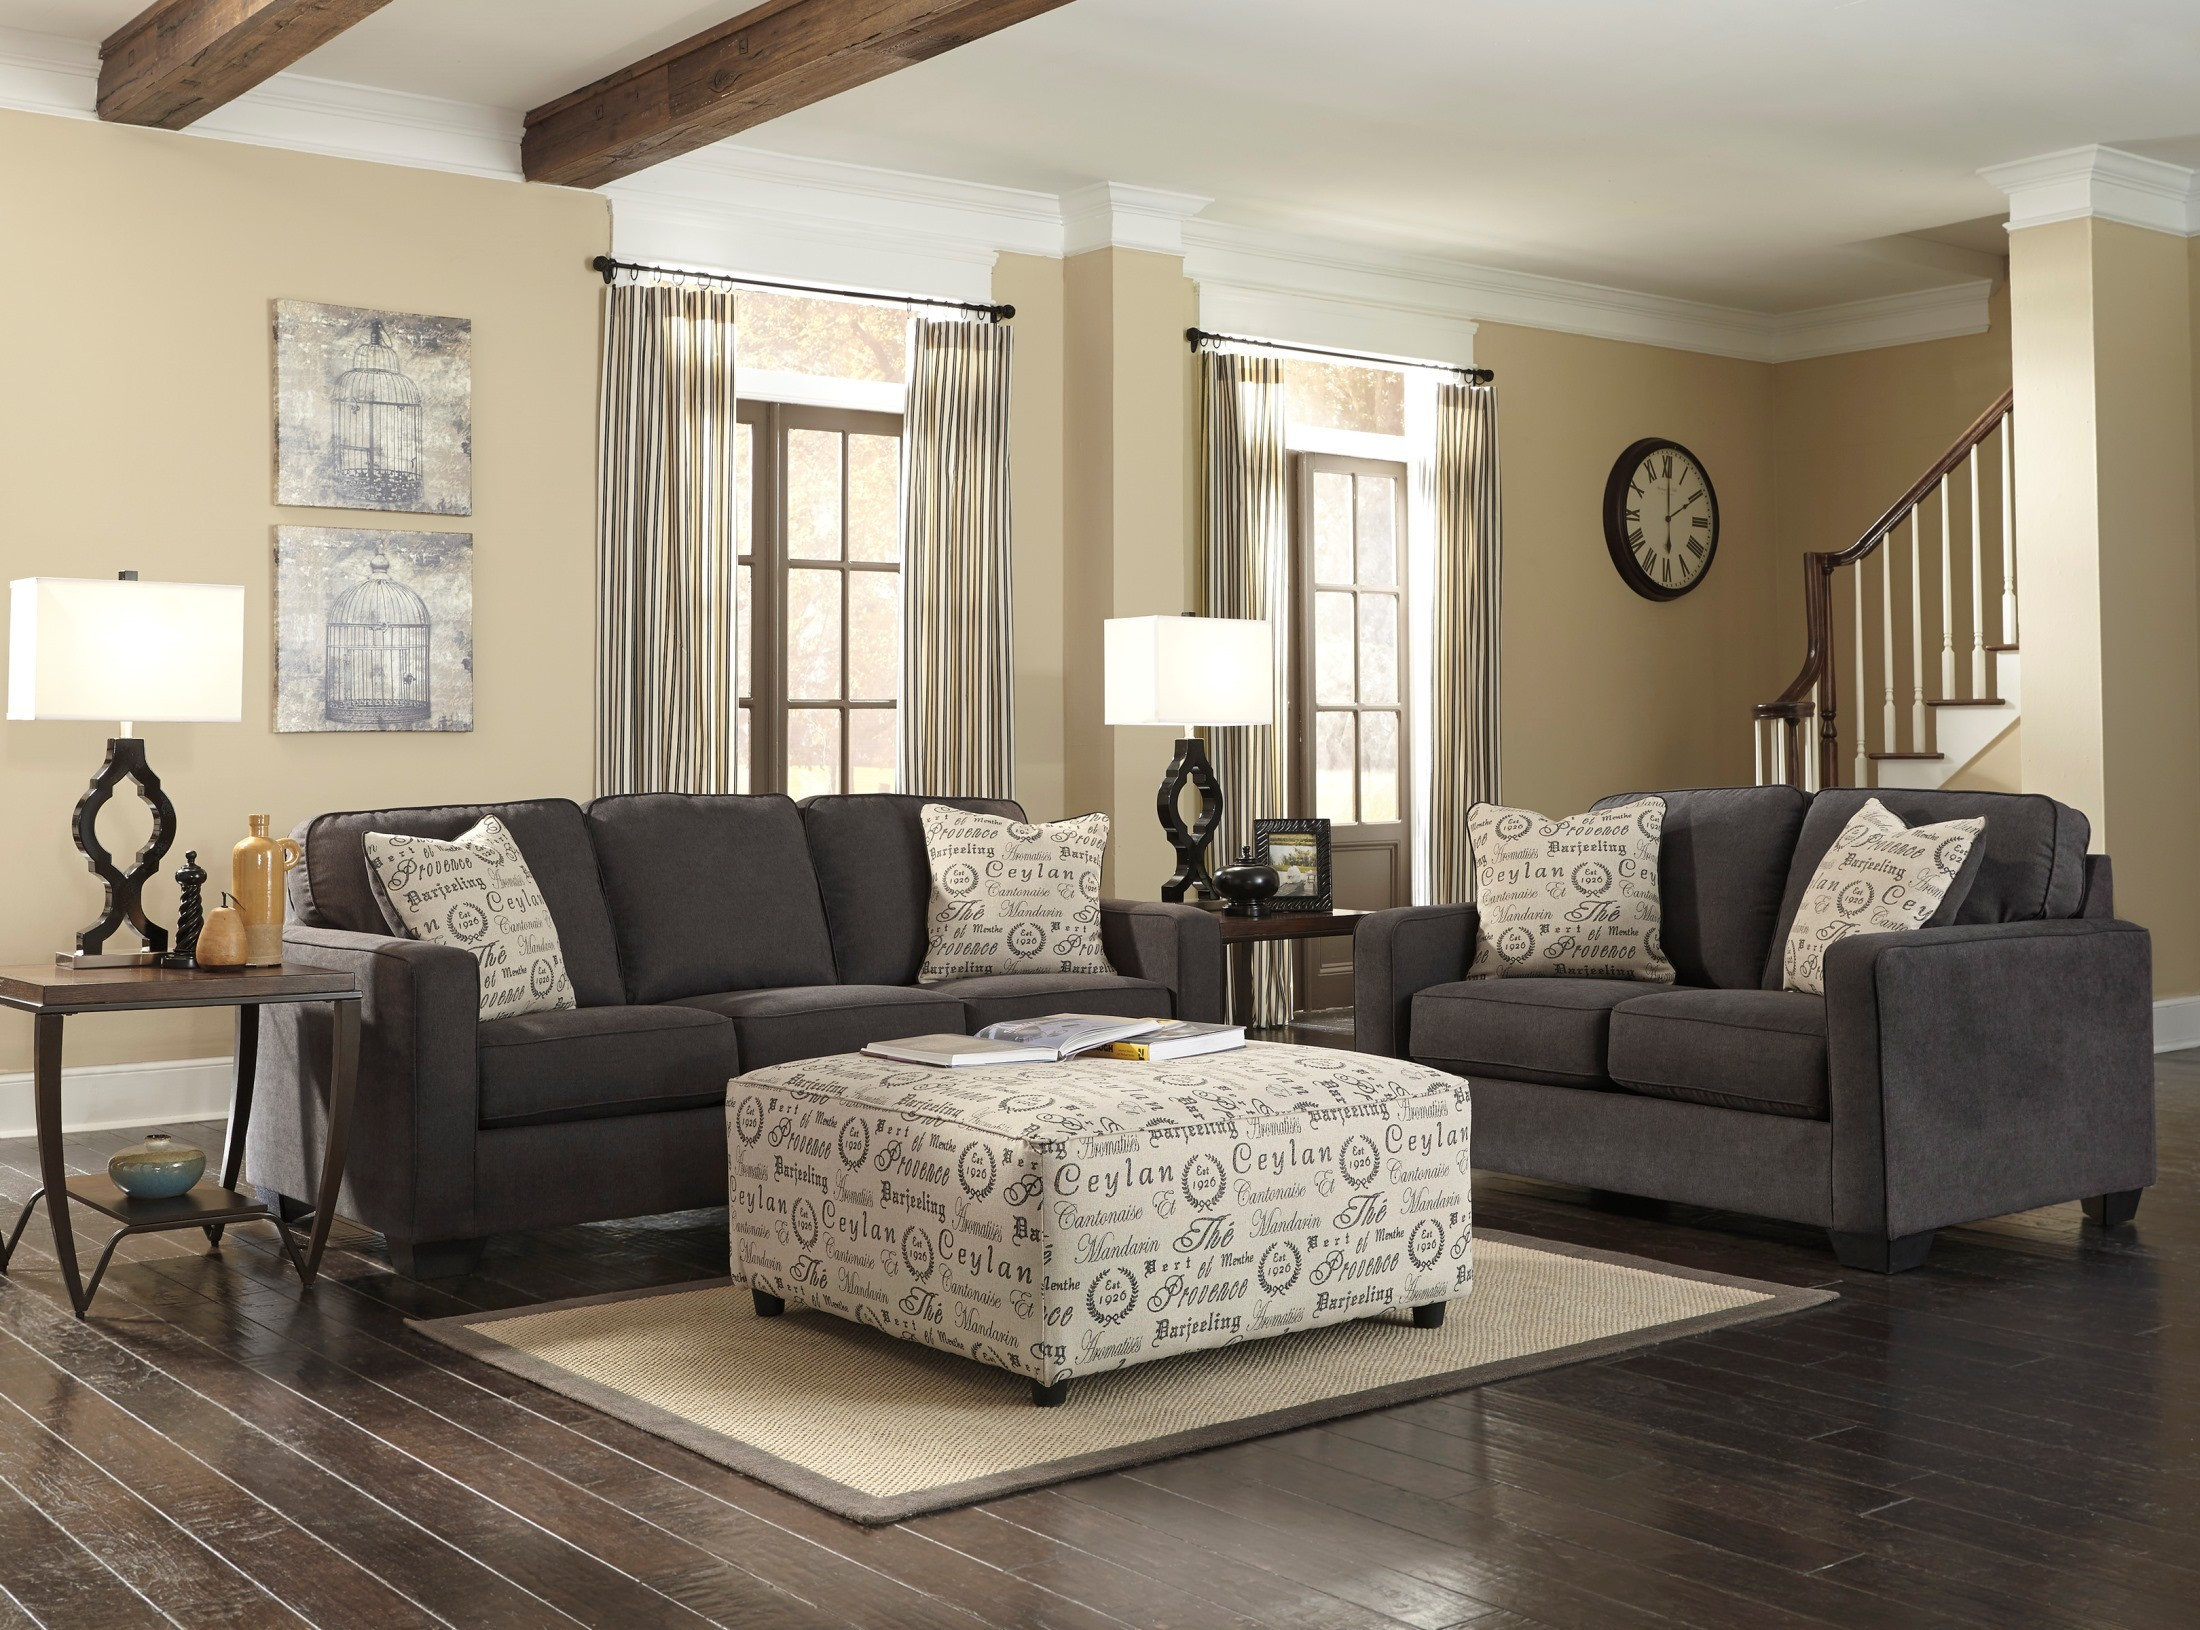 Alenya charcoal living room set 16601 38 35 ashley furniture for Living room ideas ashley furniture